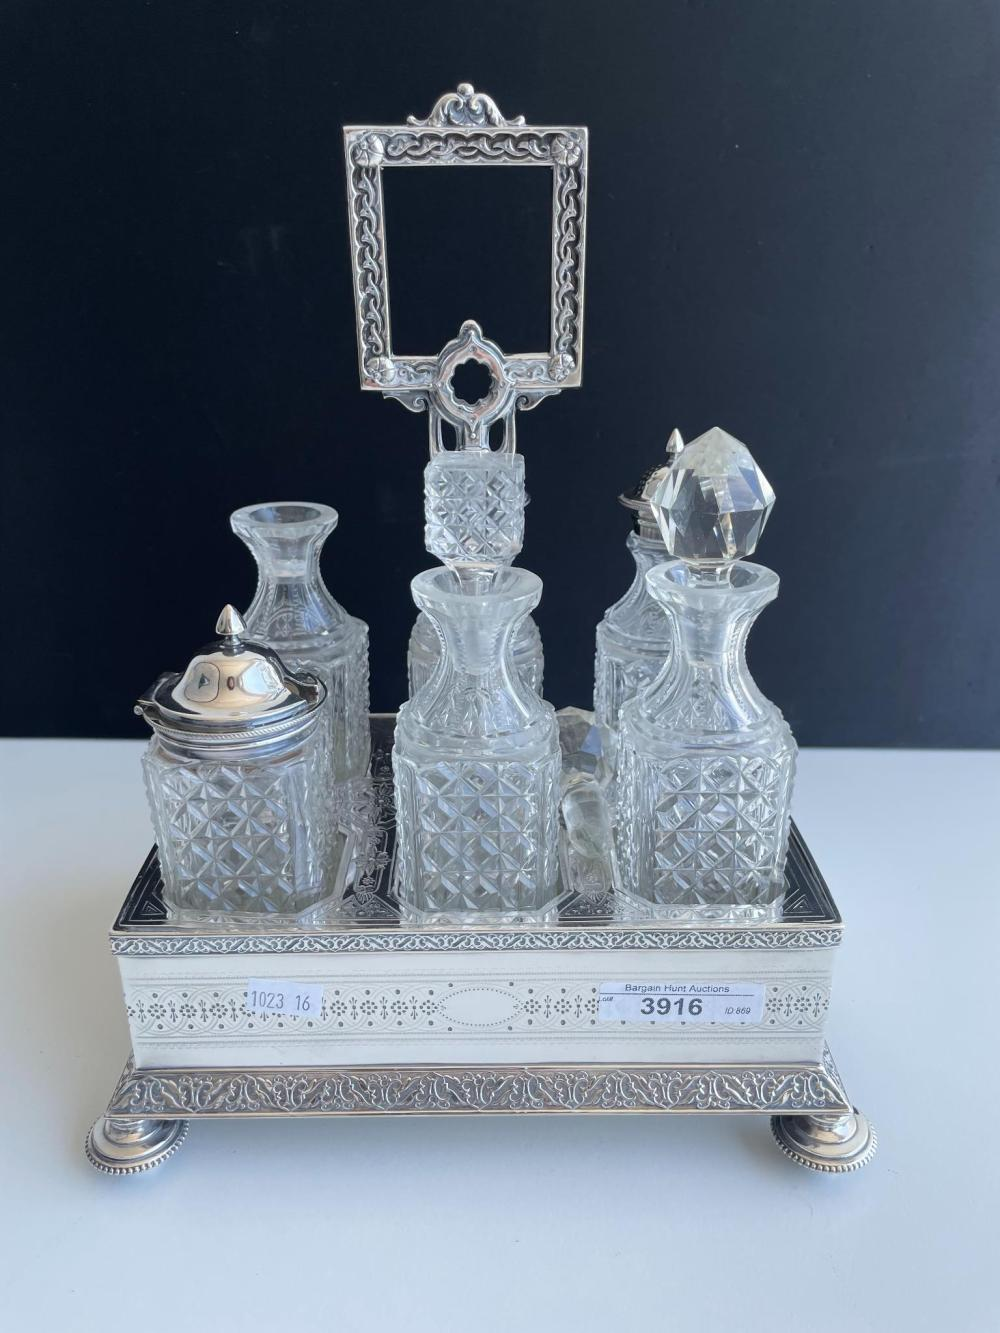 Antique silver plate and glass cruet set, stand 22 cm wide (8.66 in.)